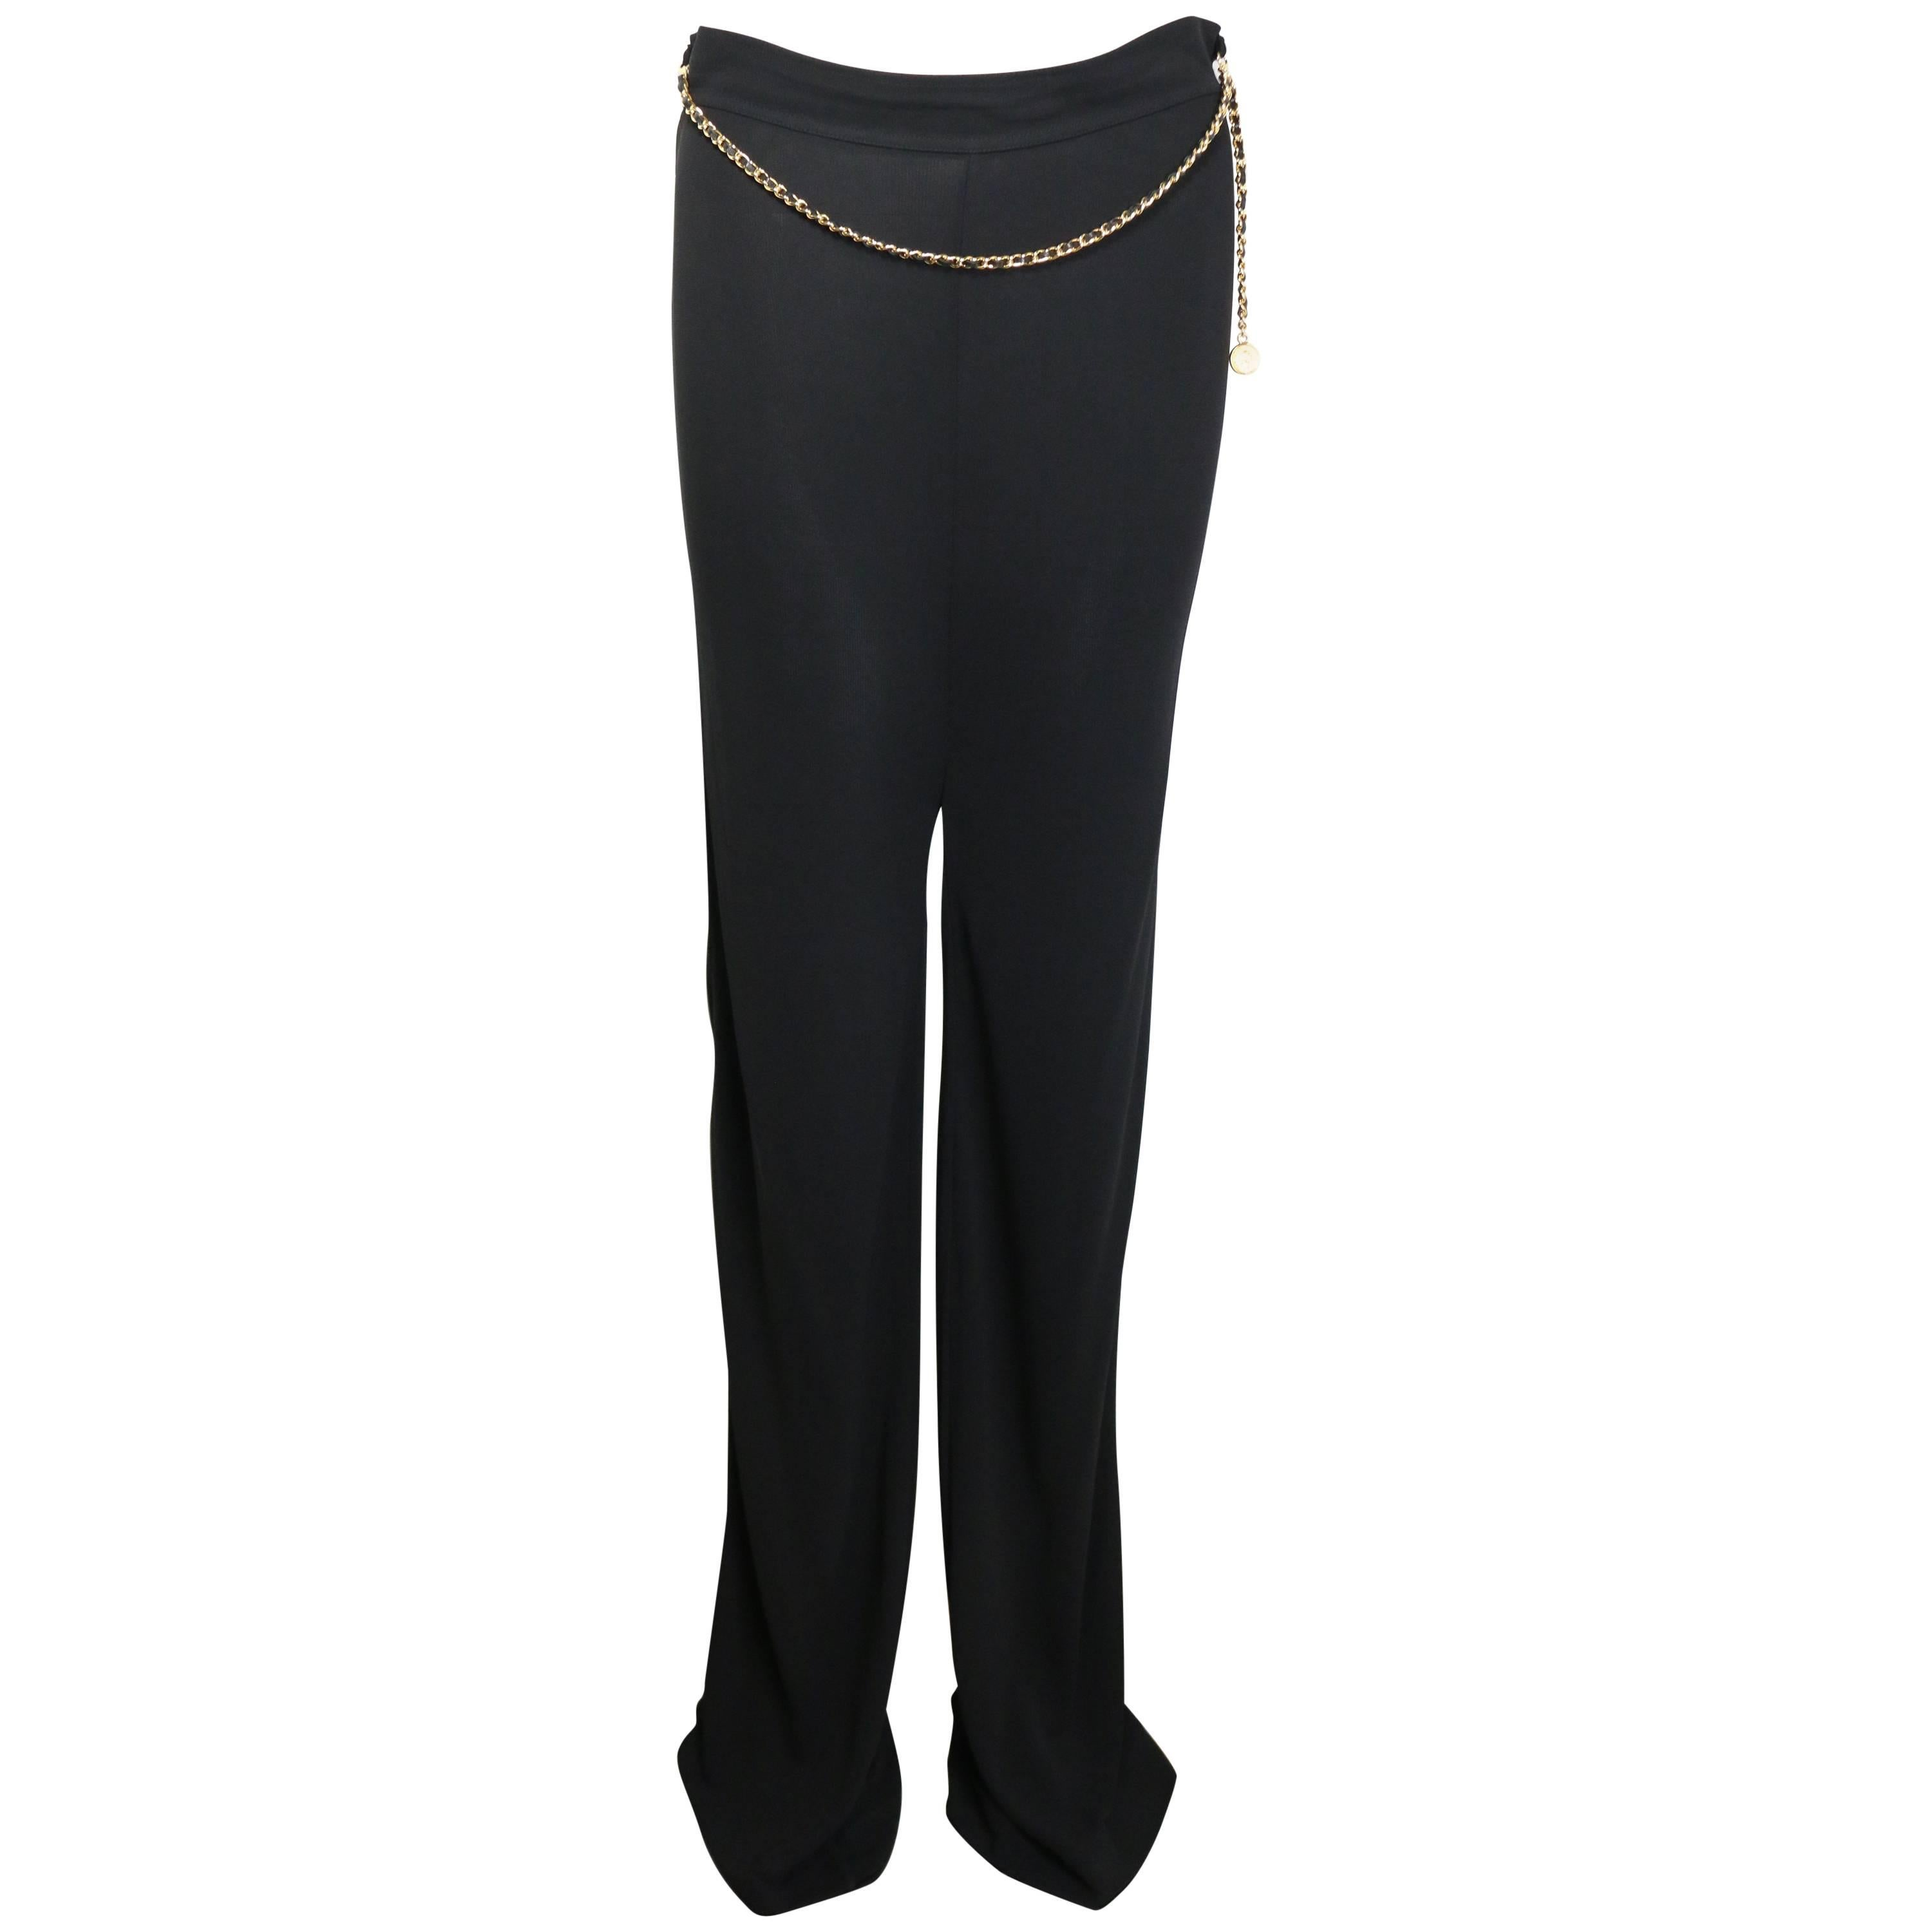 Chanel Black Jersey with Black Leather Gold Chain Pants